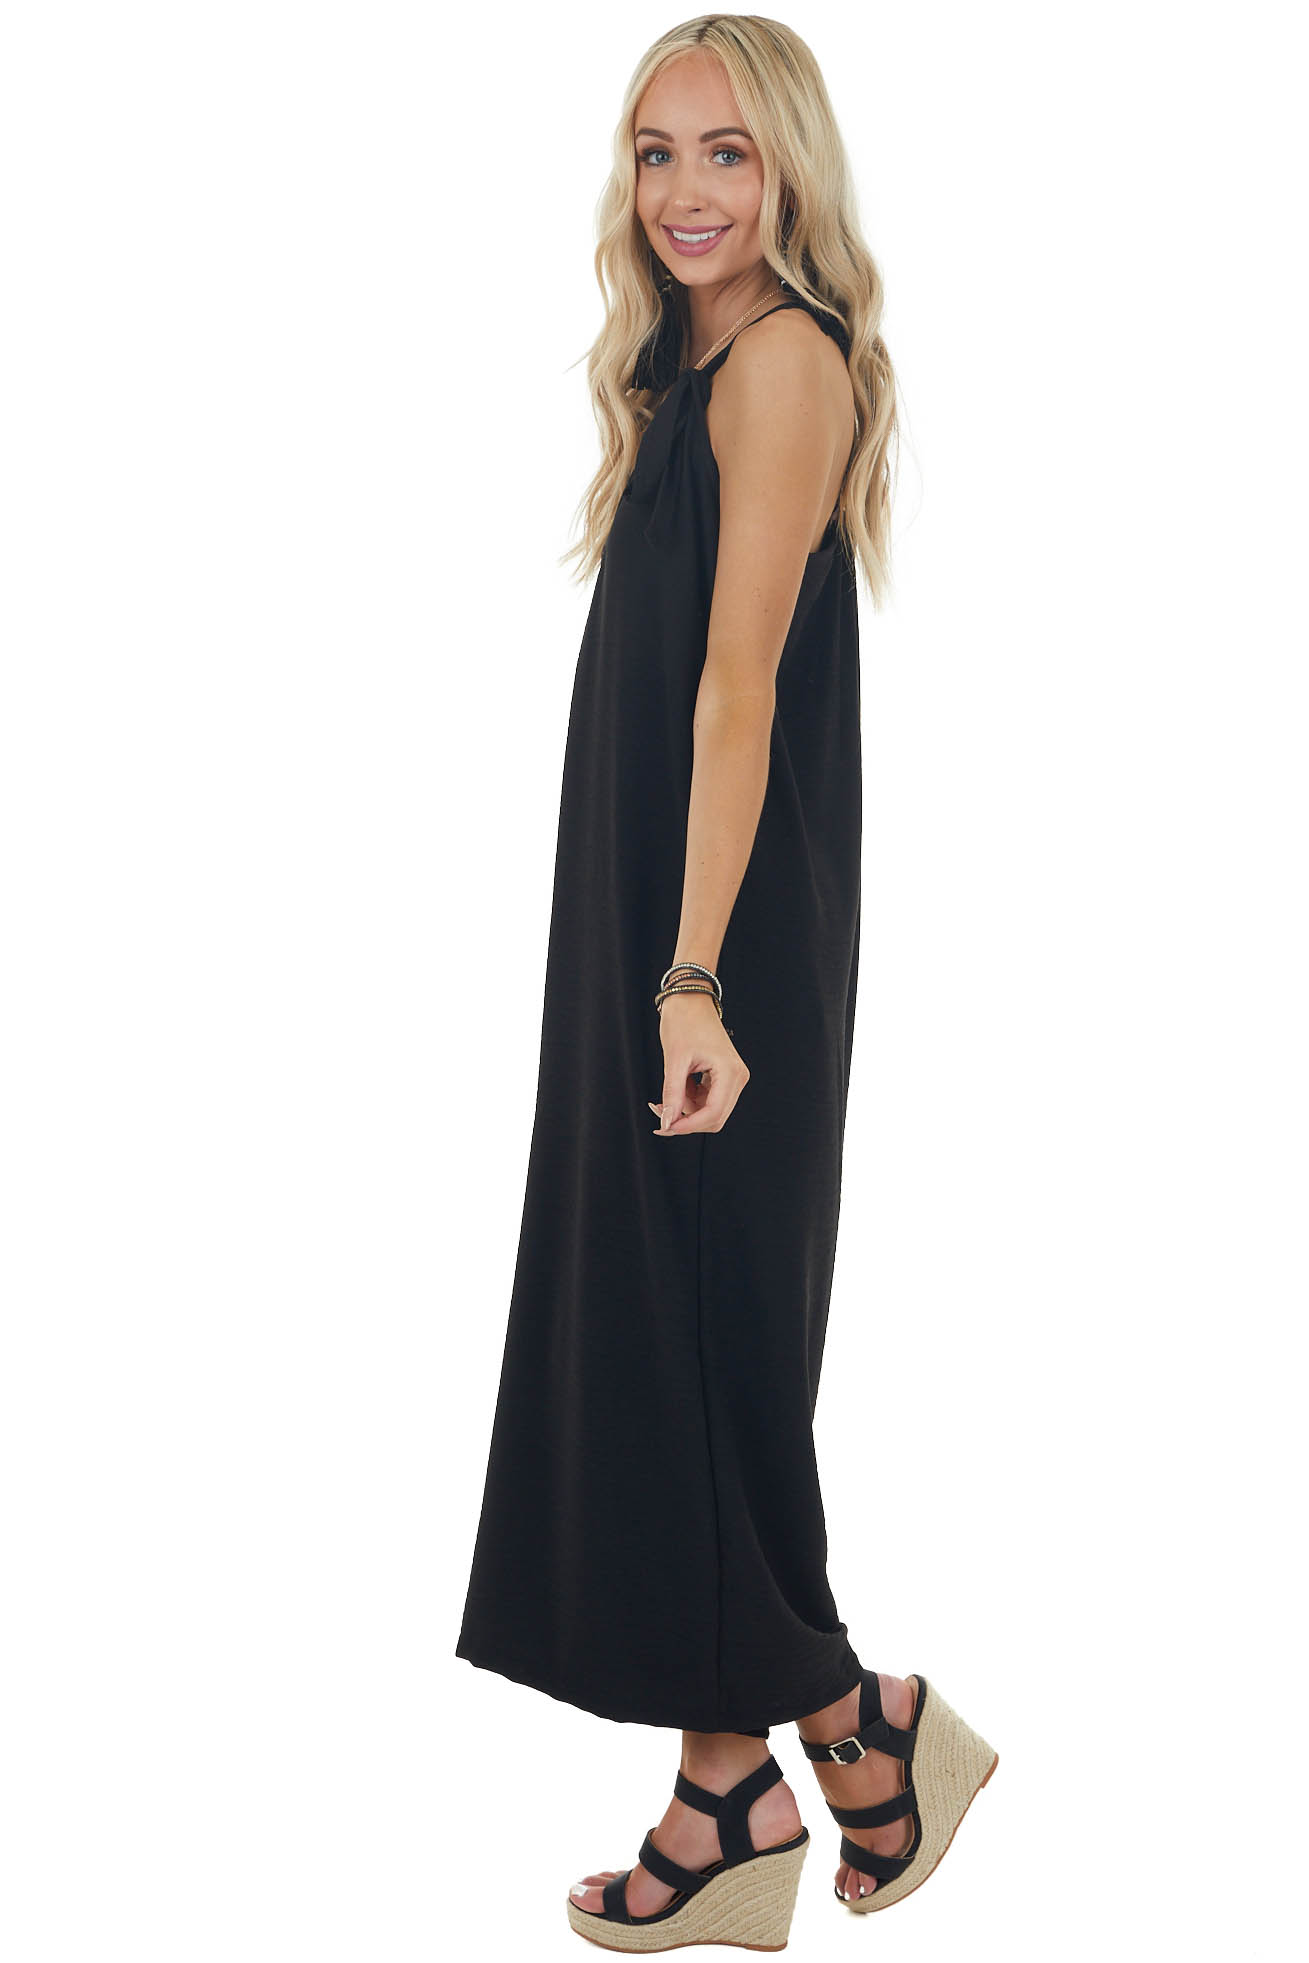 Black Wide Legged Sleeveless Jumpsuit with Front Tie